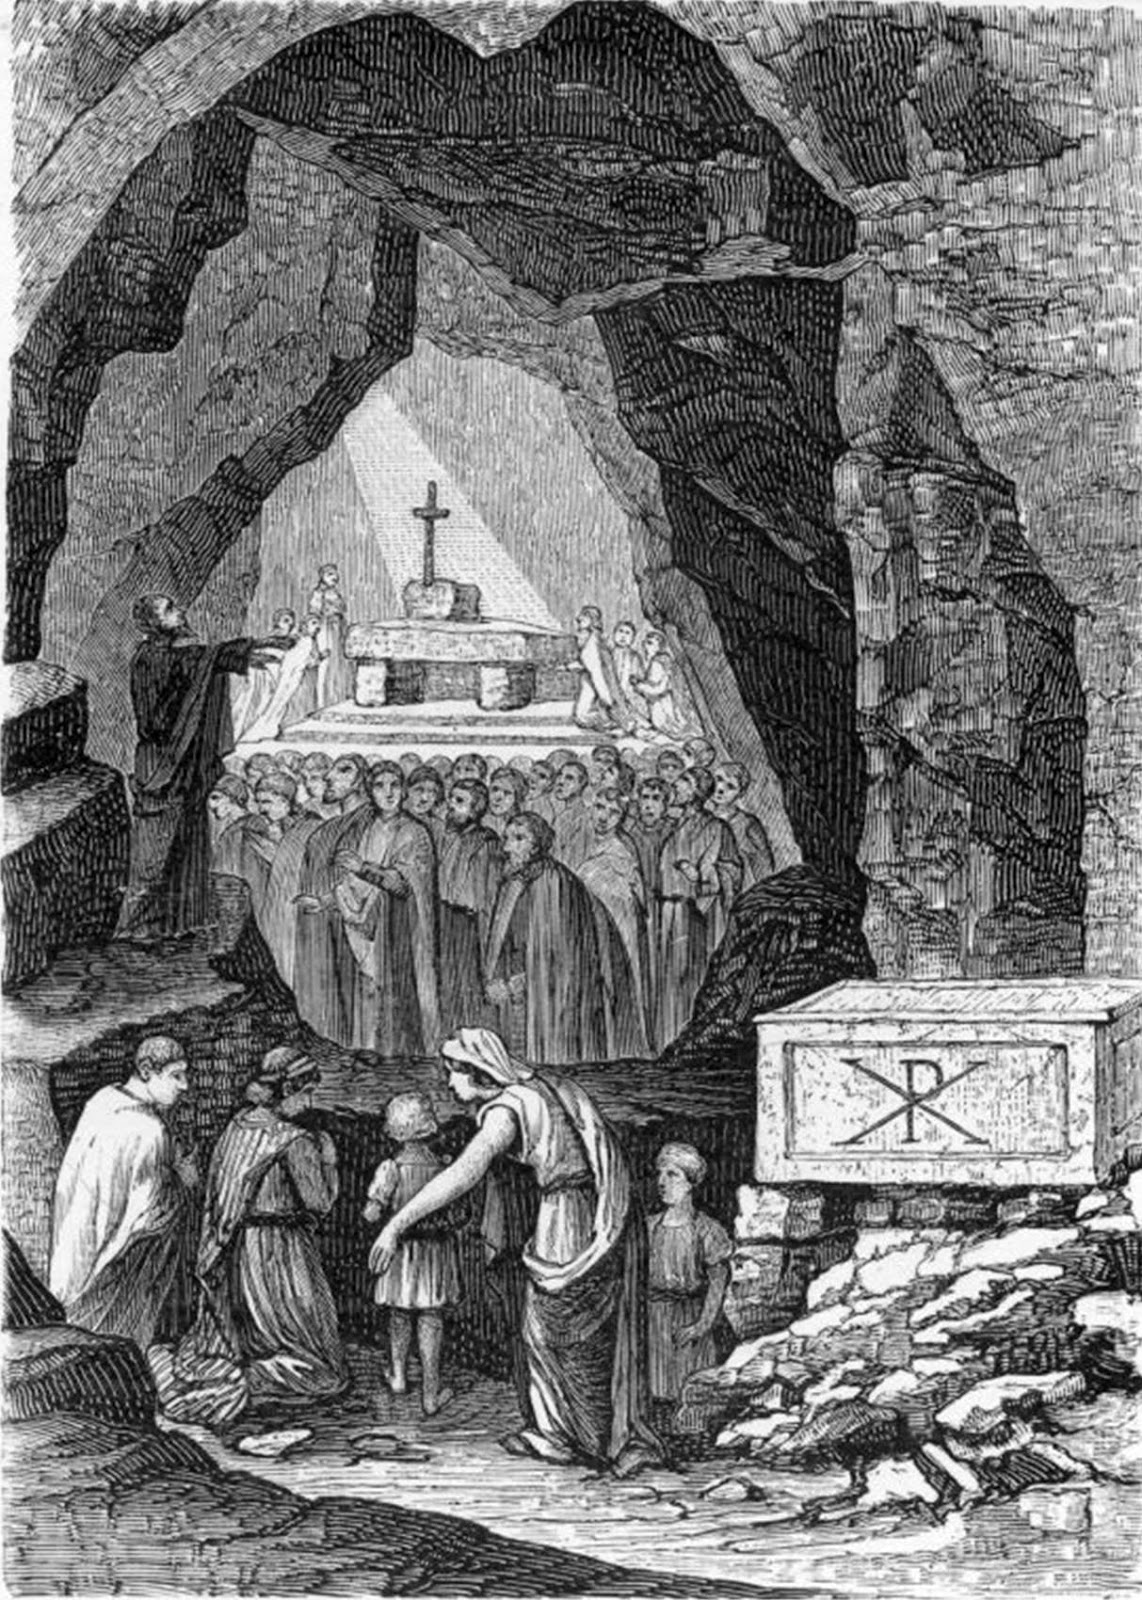 Early followers of Jesus worship in caves beneath Rome.